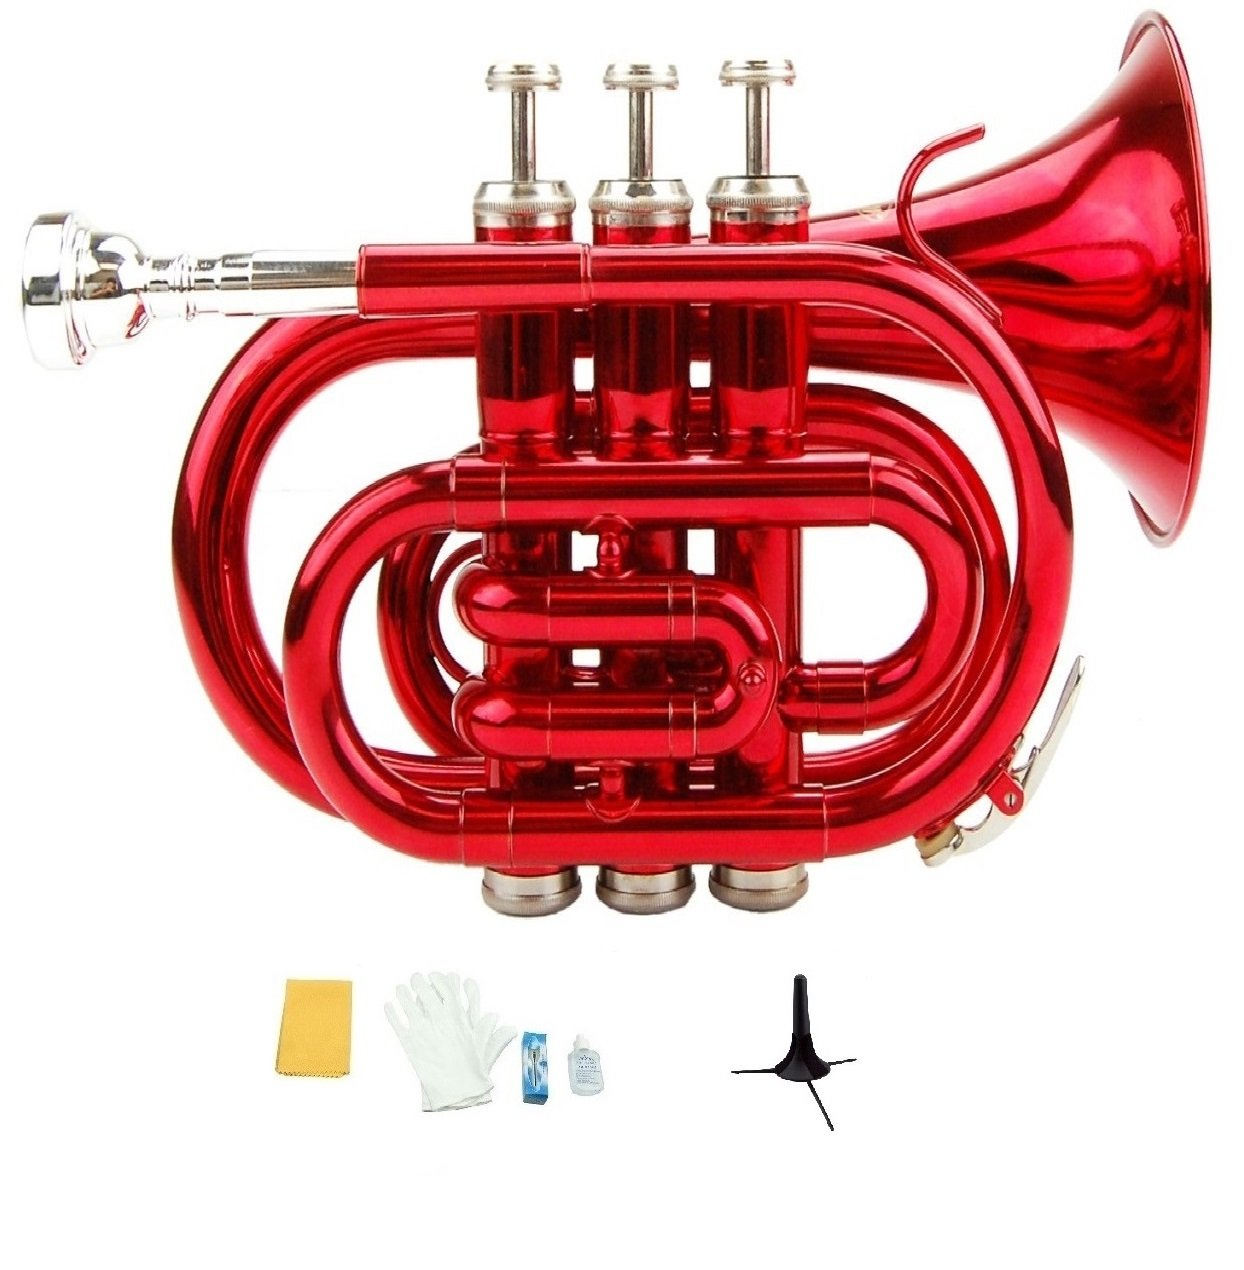 Merano B Flat Red Pocket Trumpet with Case+Mouth Piece;Valve oil;A Pair Of Gloves;Soft Cleaning Cloth+Stand WD480RD-S